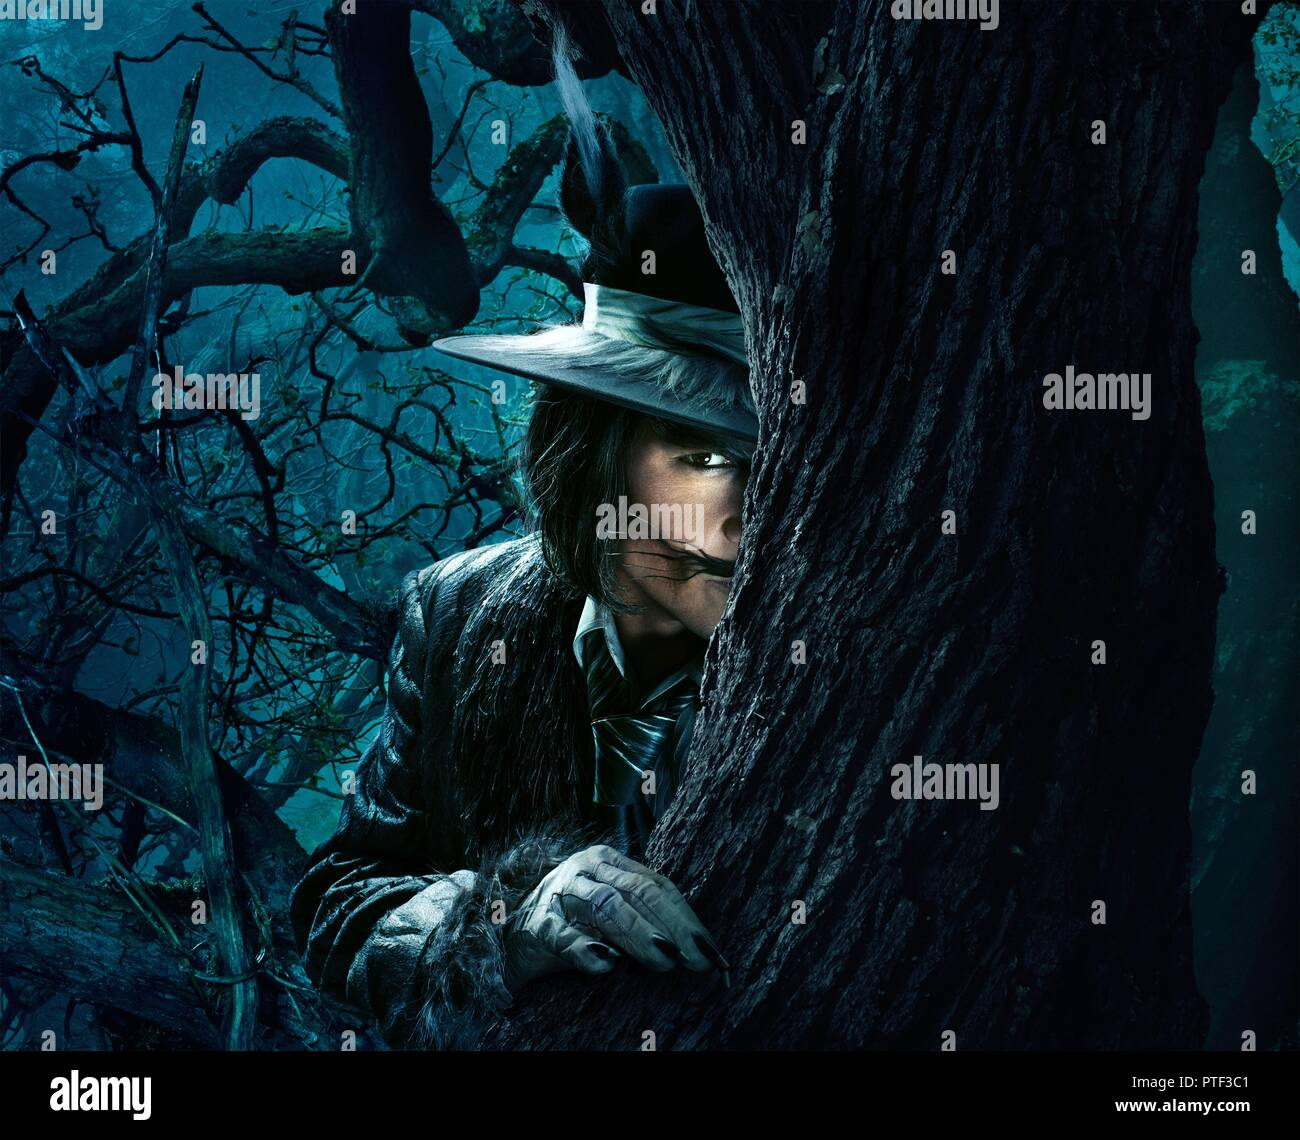 Original film title: INTO THE WOODS. English title: INTO THE WOODS. Year: 2014. Director: ROB MARSHALL. Stars: JOHNNY DEPP. Credit: WALT DISNEY PICTURES / Album - Stock Image